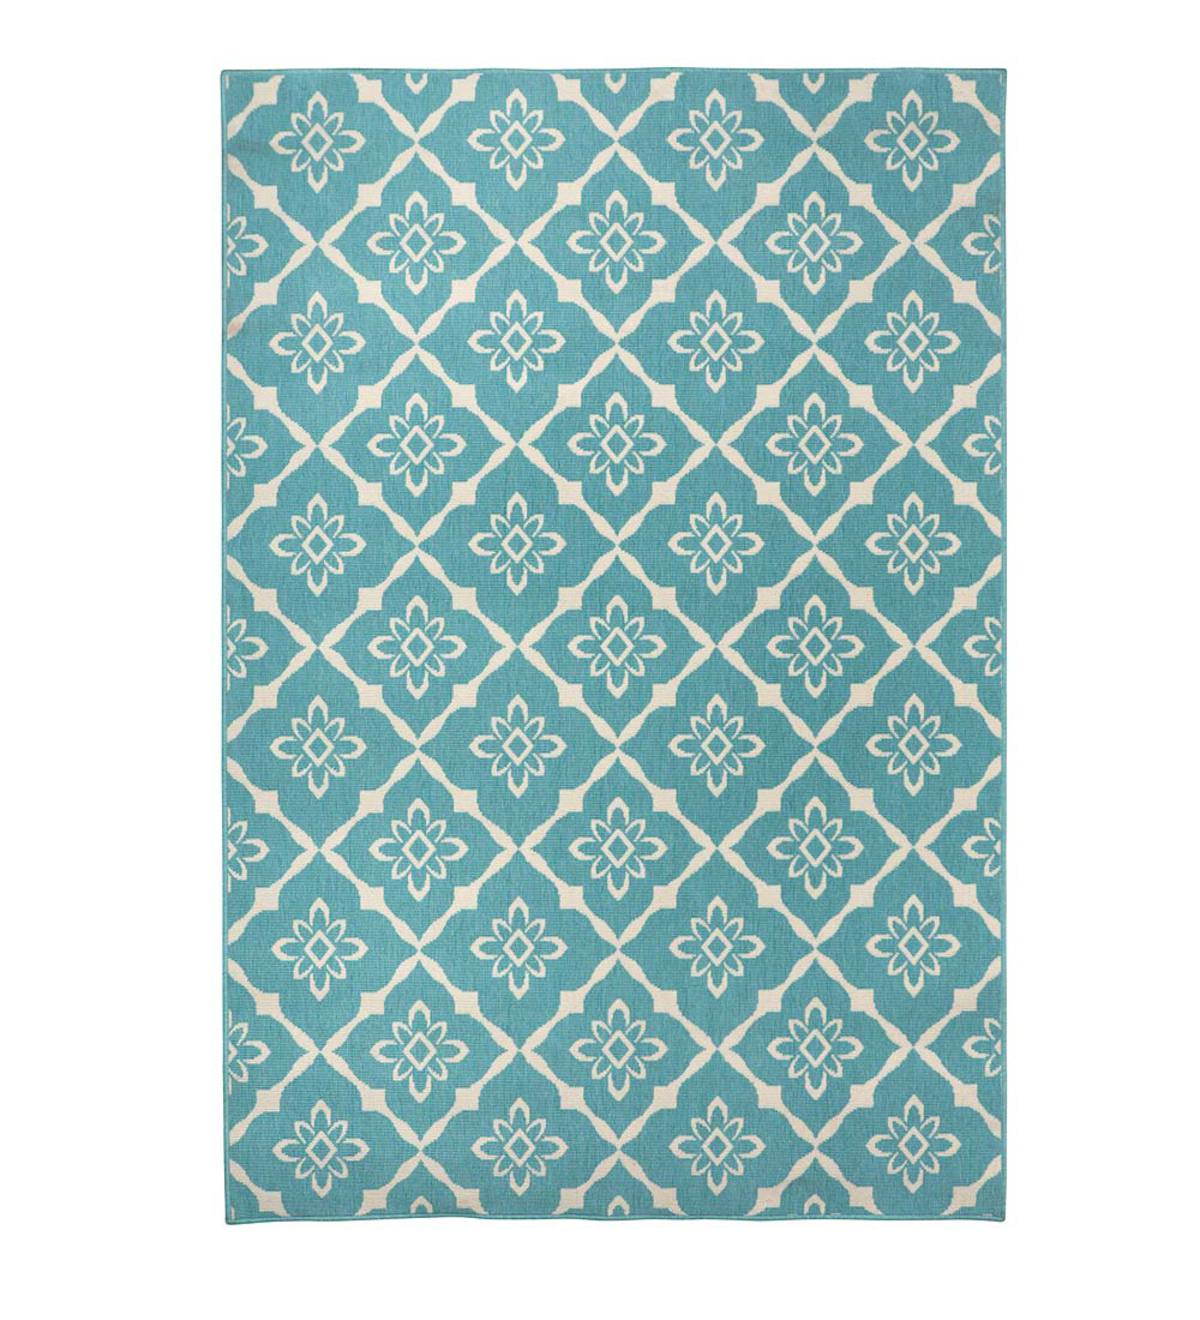 "Sale! Lexington Trellis Rug, 5'3""x 7'6"" - Light Green"